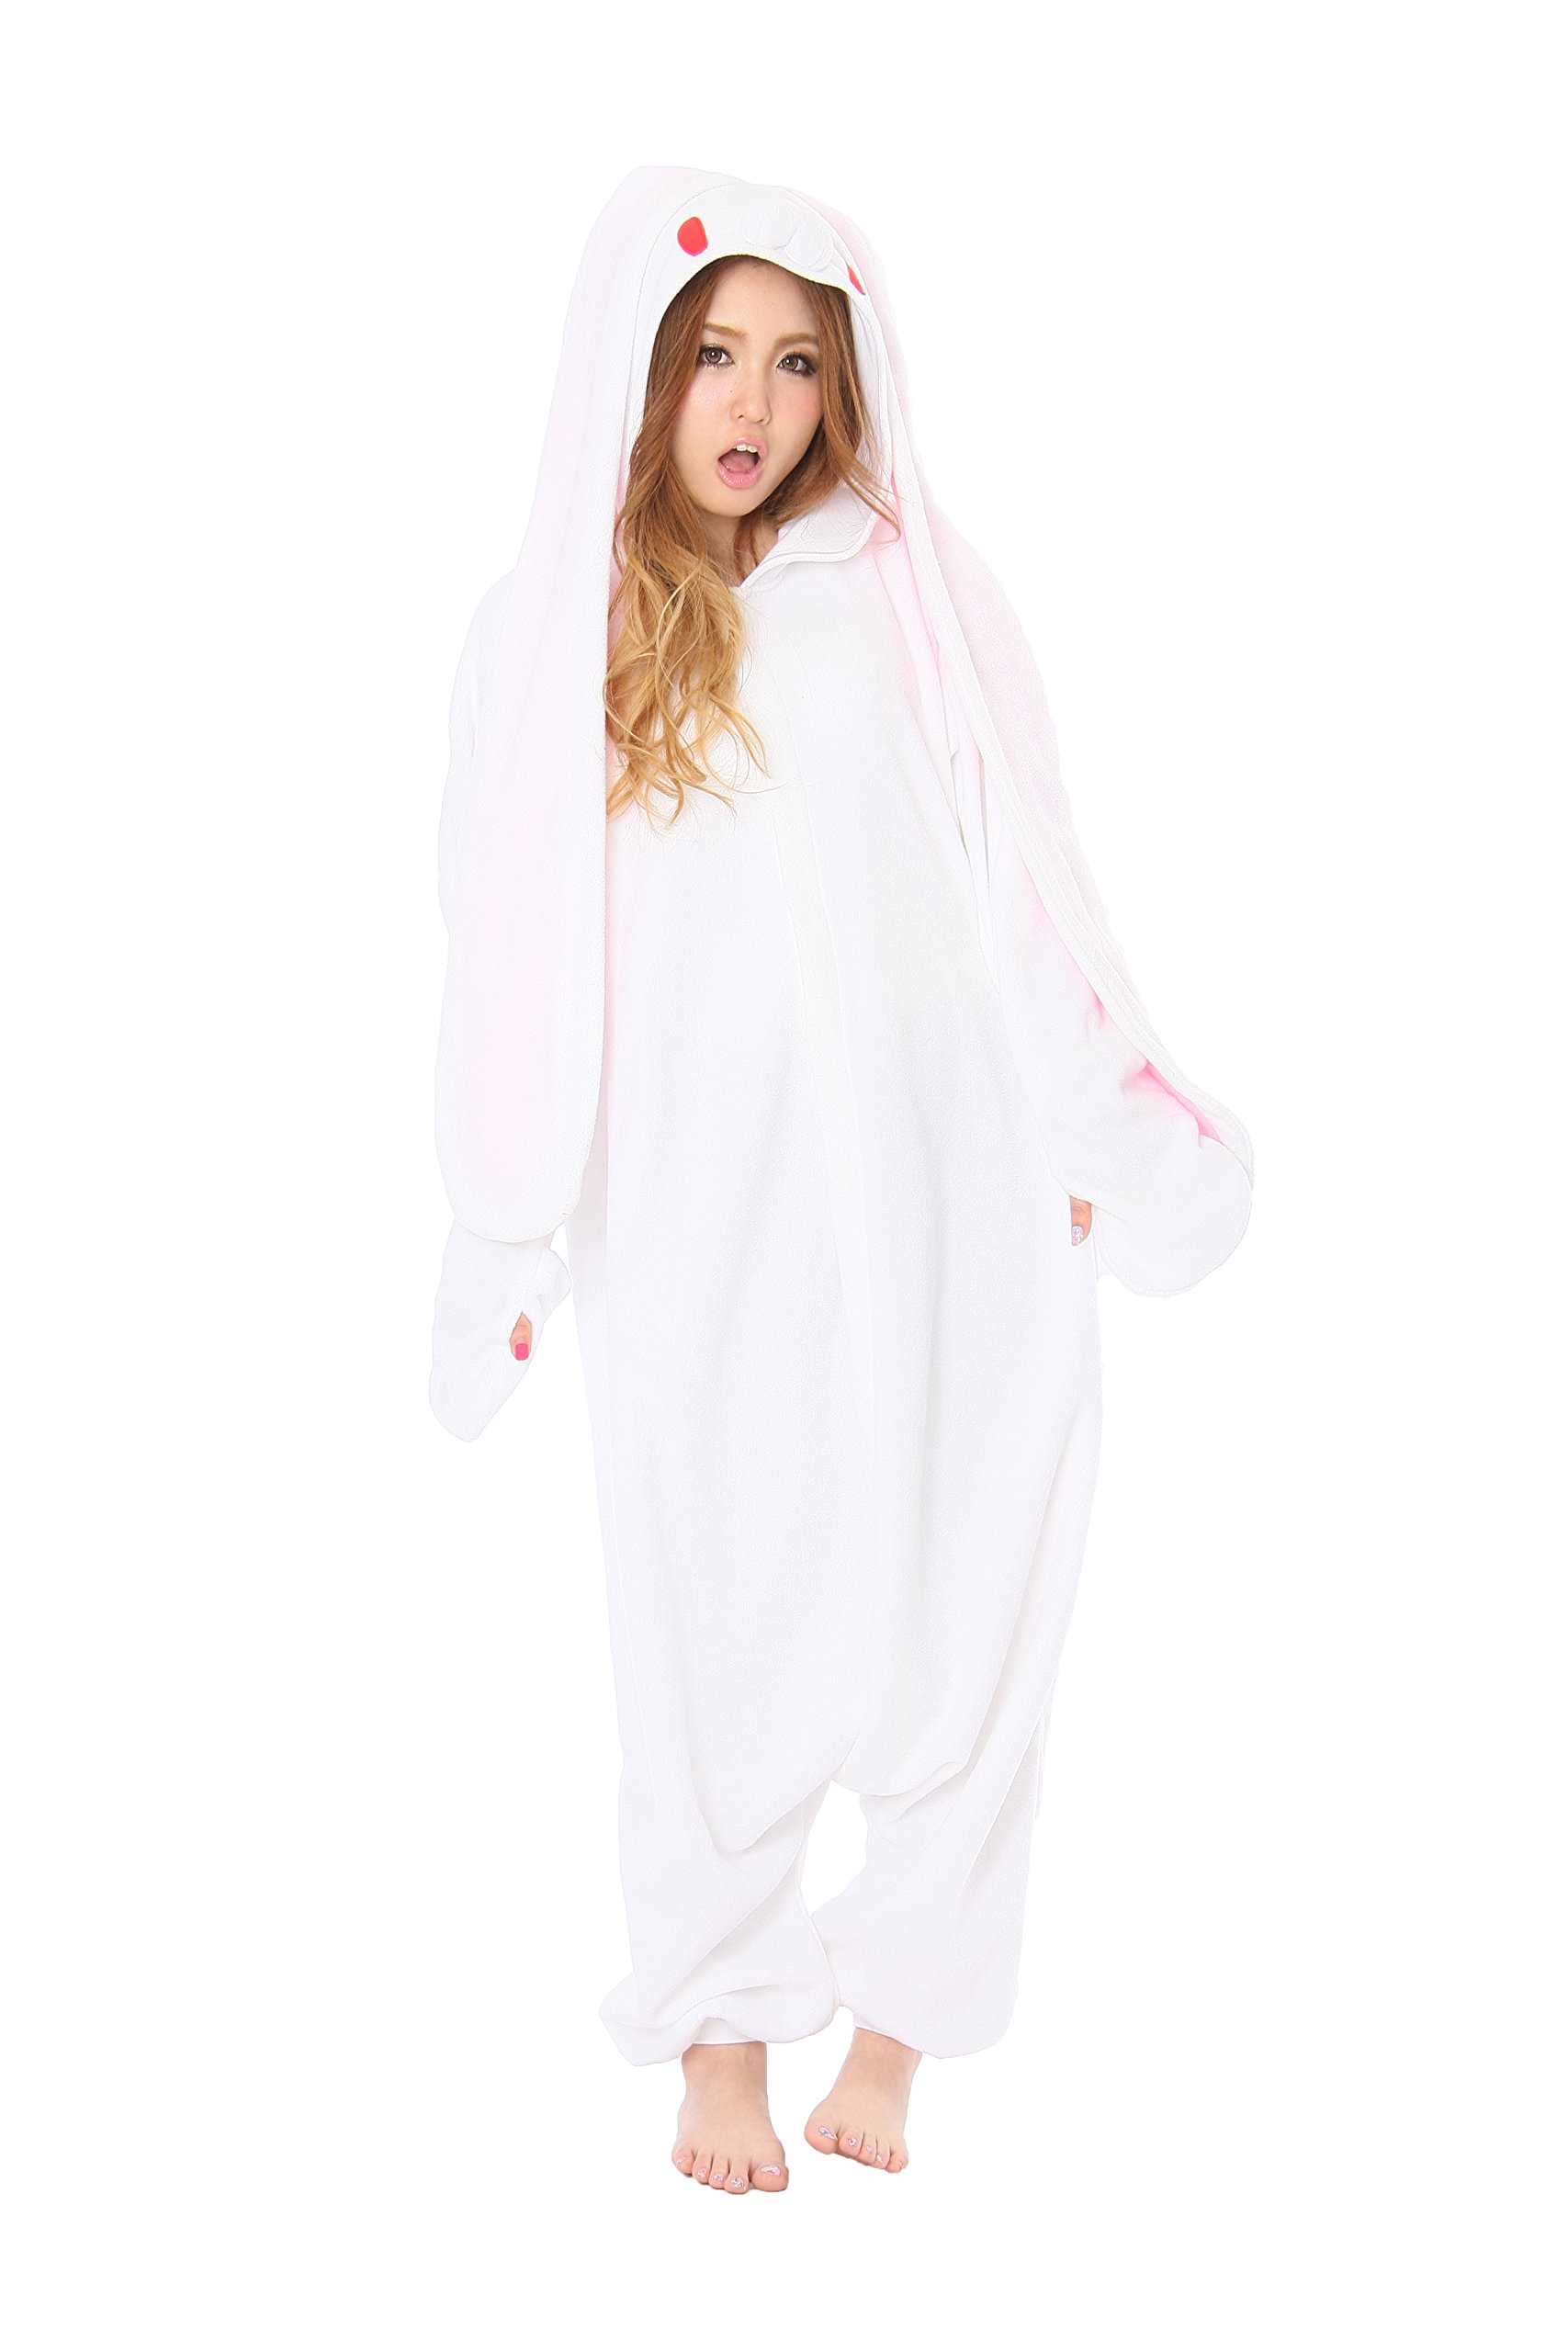 Hanyo Usagi Kigurumi - Adults Costume Halloween